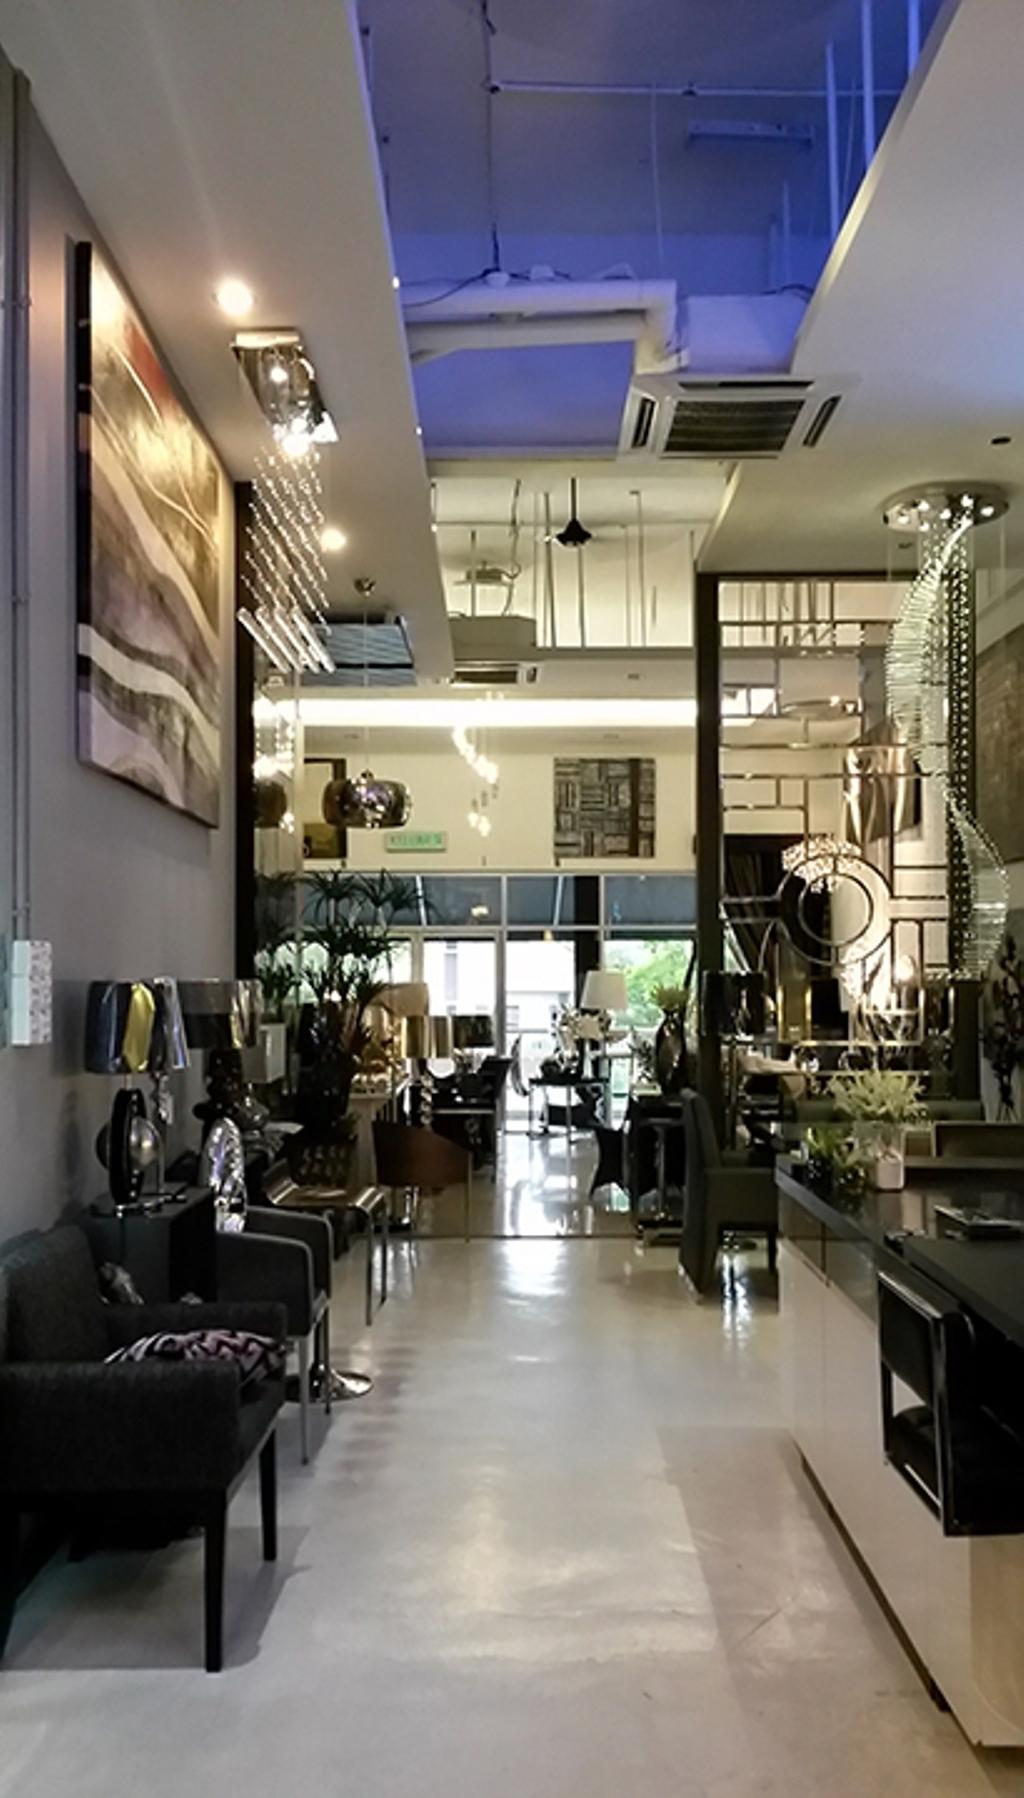 The Arch Showroom, Commercial, Interior Designer, The Arch, Contemporary, Flora, Jar, Plant, Potted Plant, Pottery, Vase